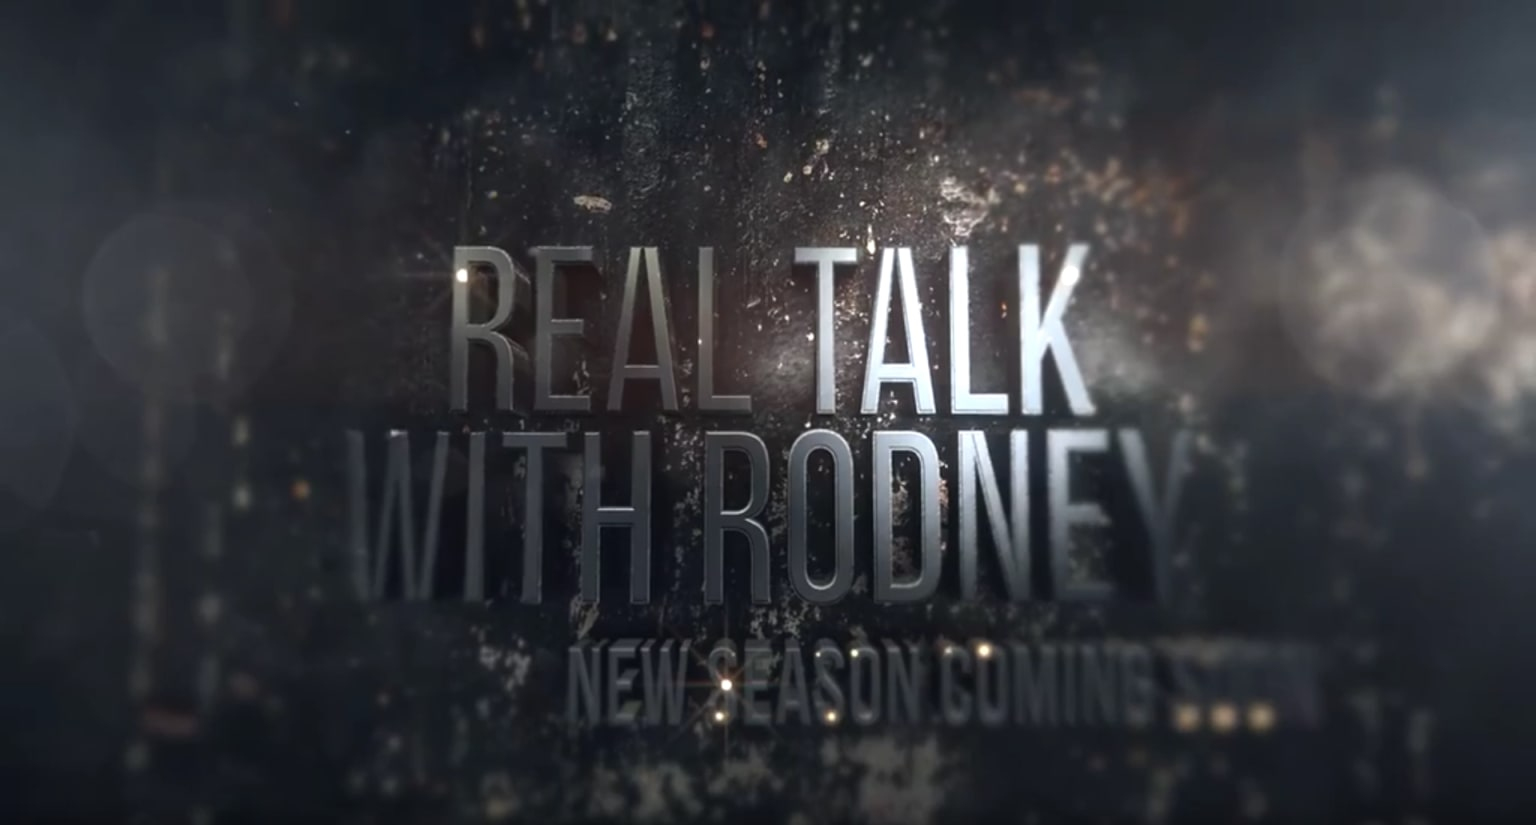 REAL TALK WITH RODNEY TITLE SEQUENCE #1